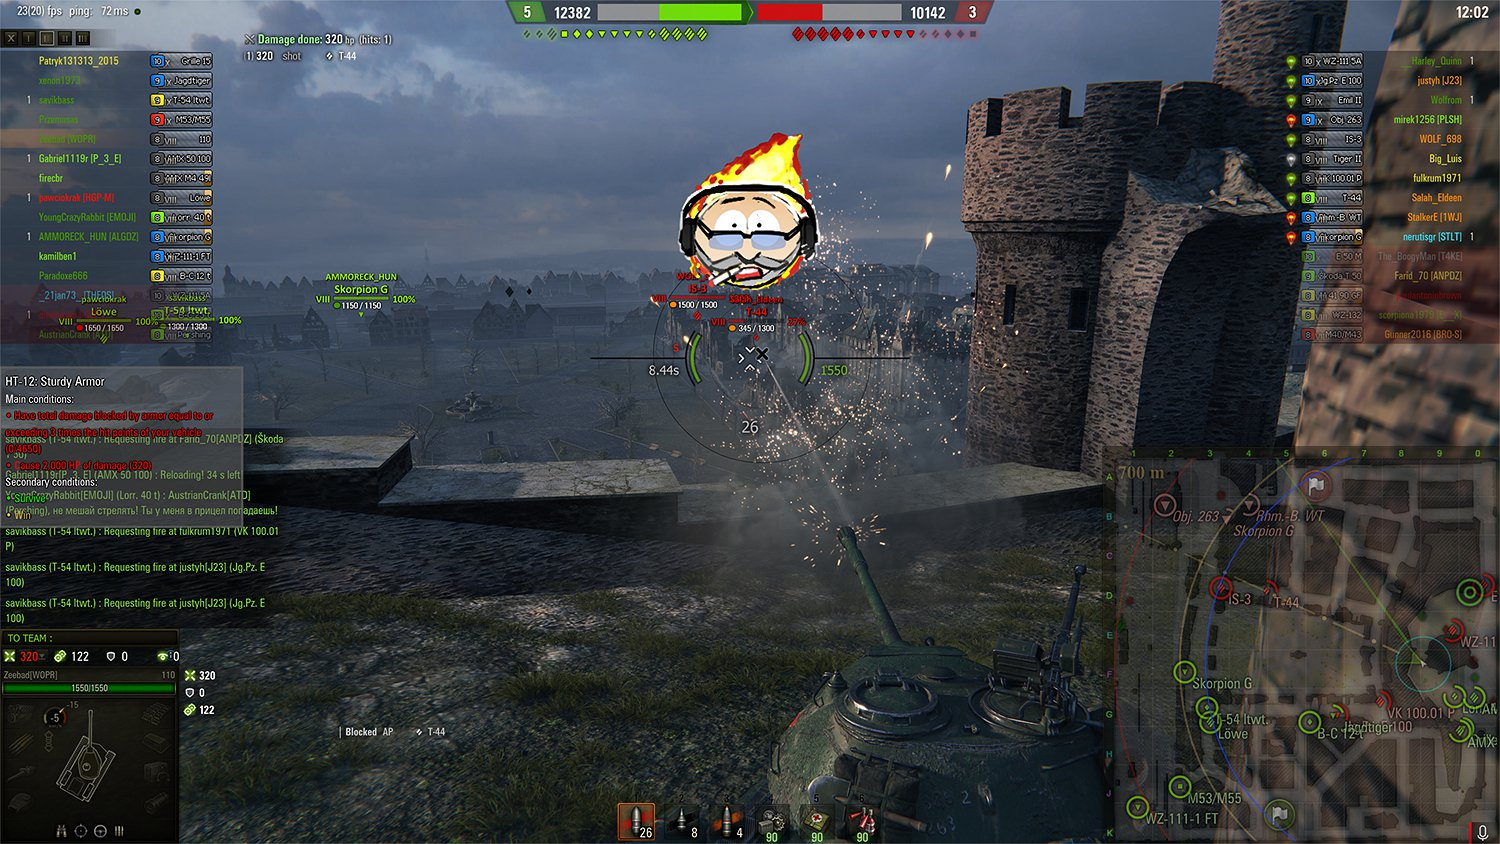 world of tanks sith sence mod